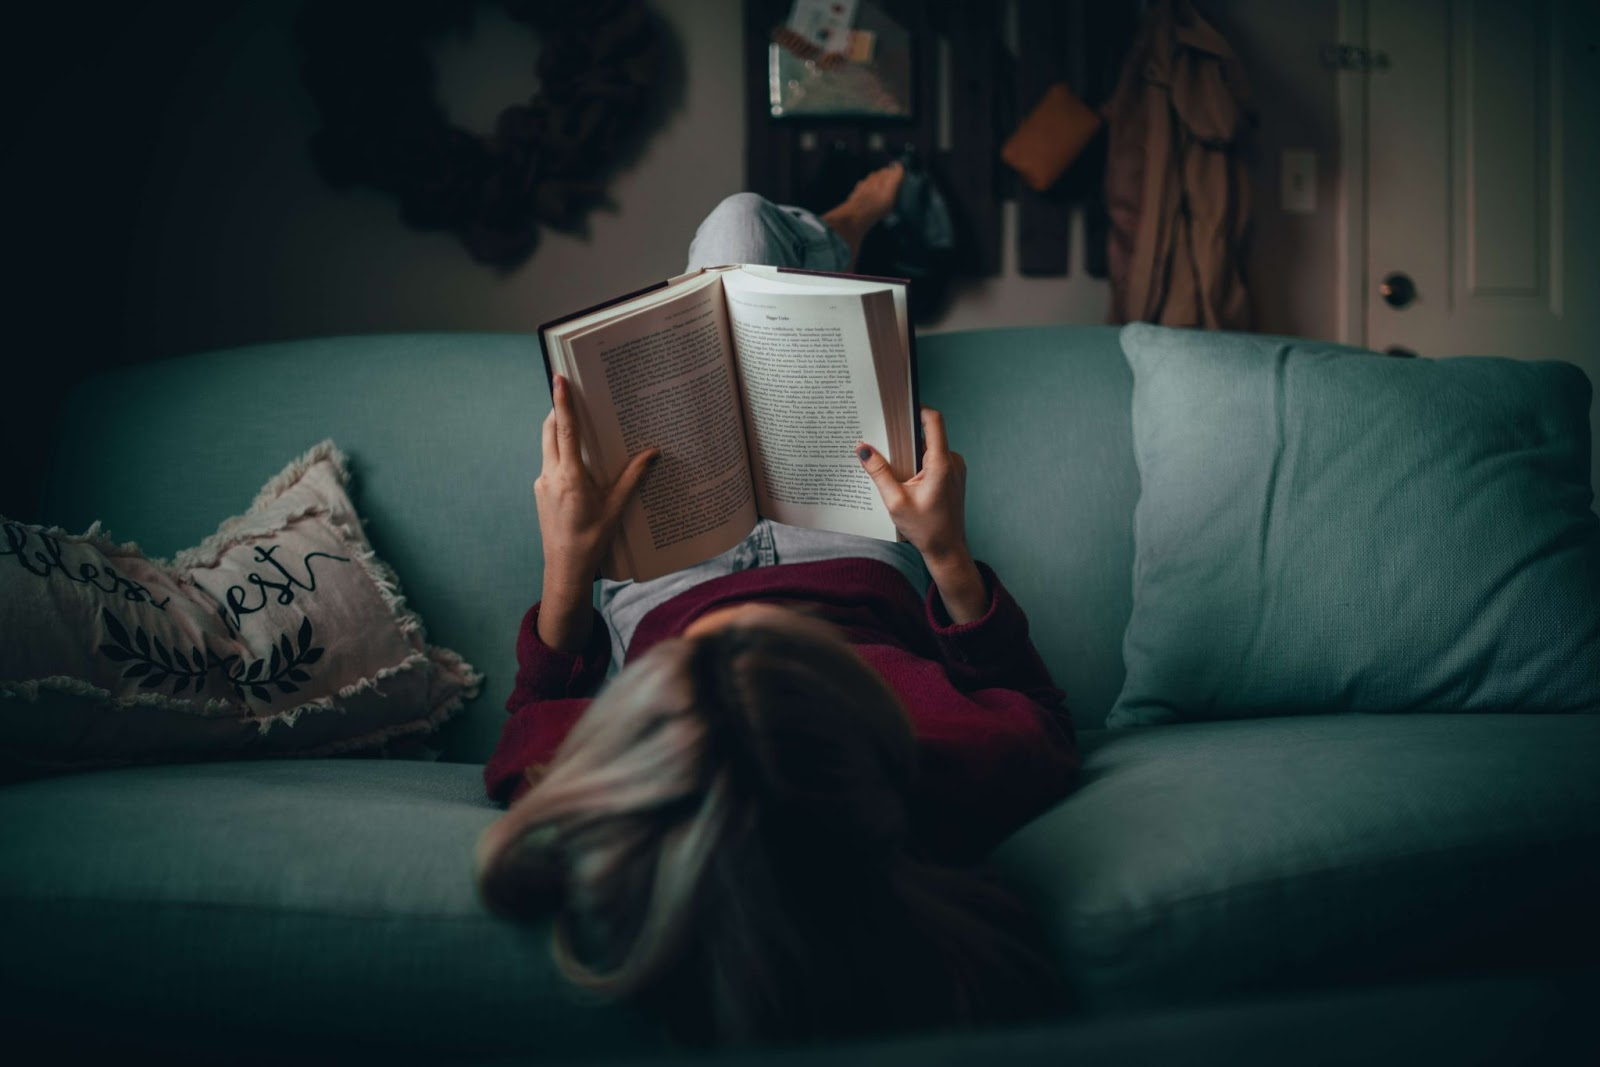 girl sitting on a blue couch reading a book